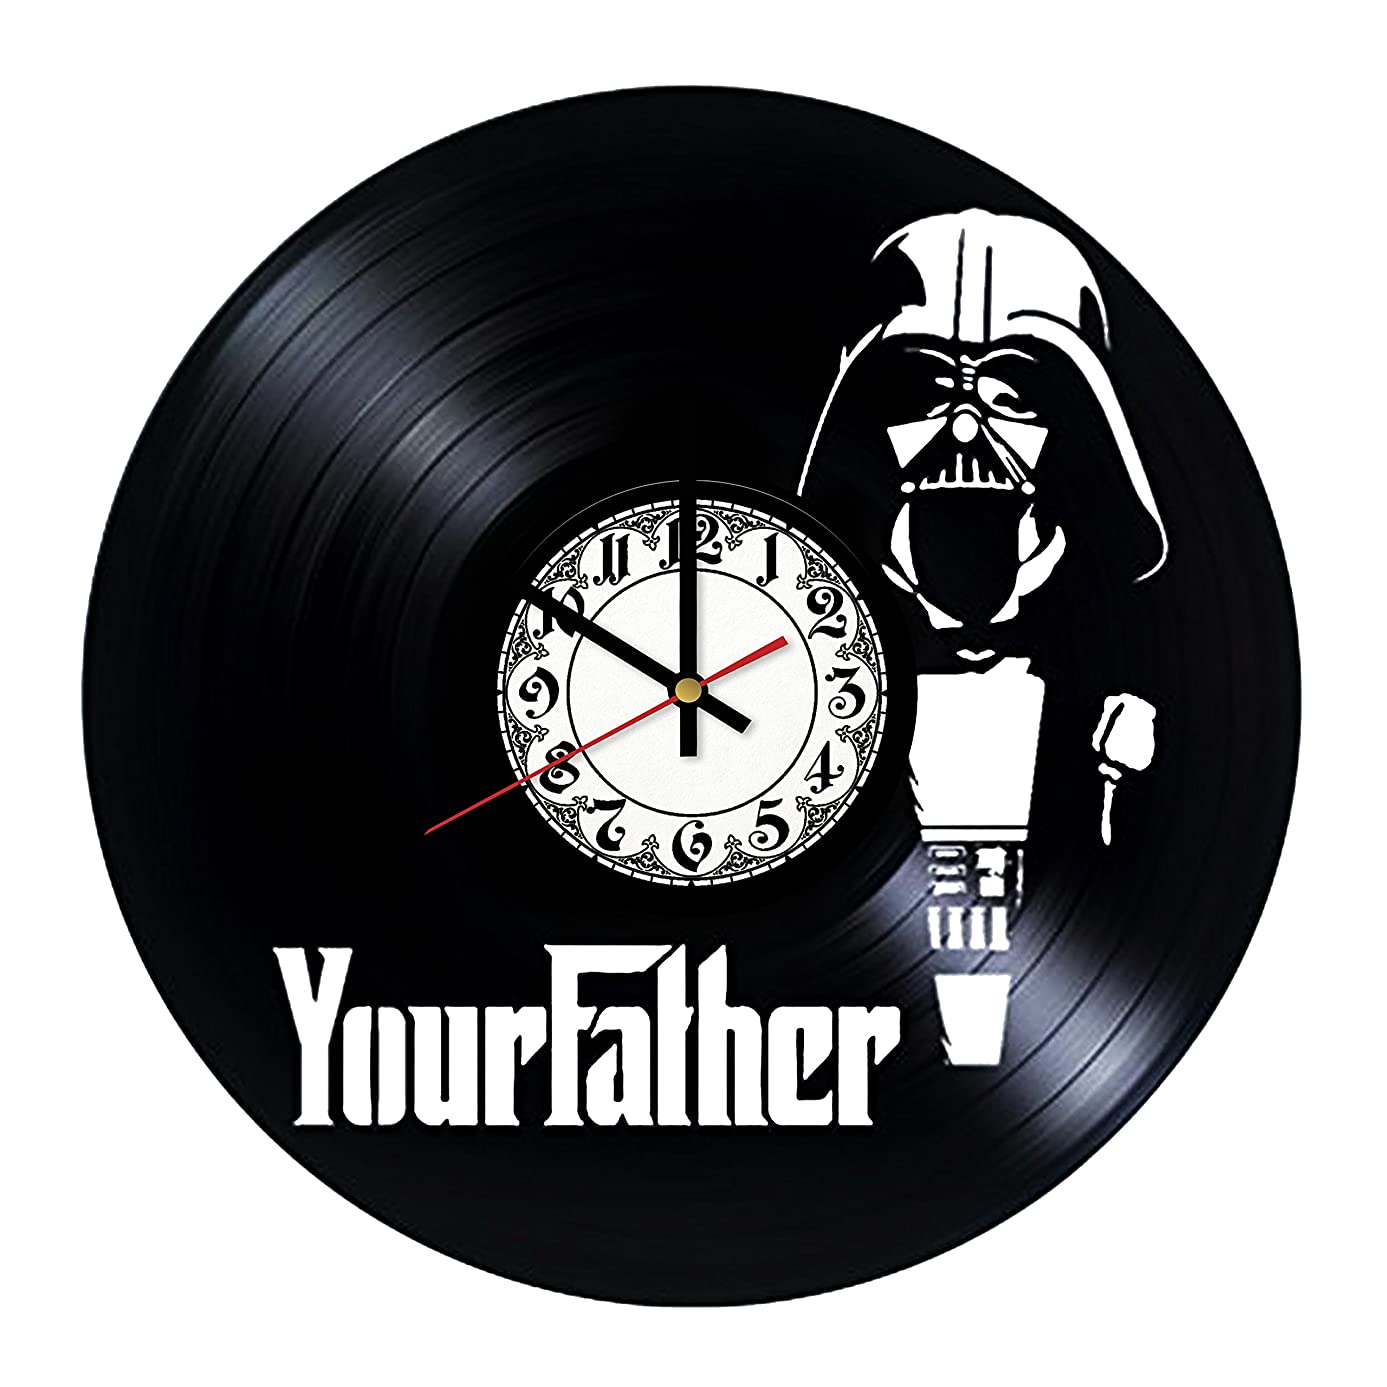 Darth Vader Your Father Star Wars Handmade Vinyl Record Wall Clock - Get unique room wall decor - Gift ideas for his and her – Modern Unique Home Art Design